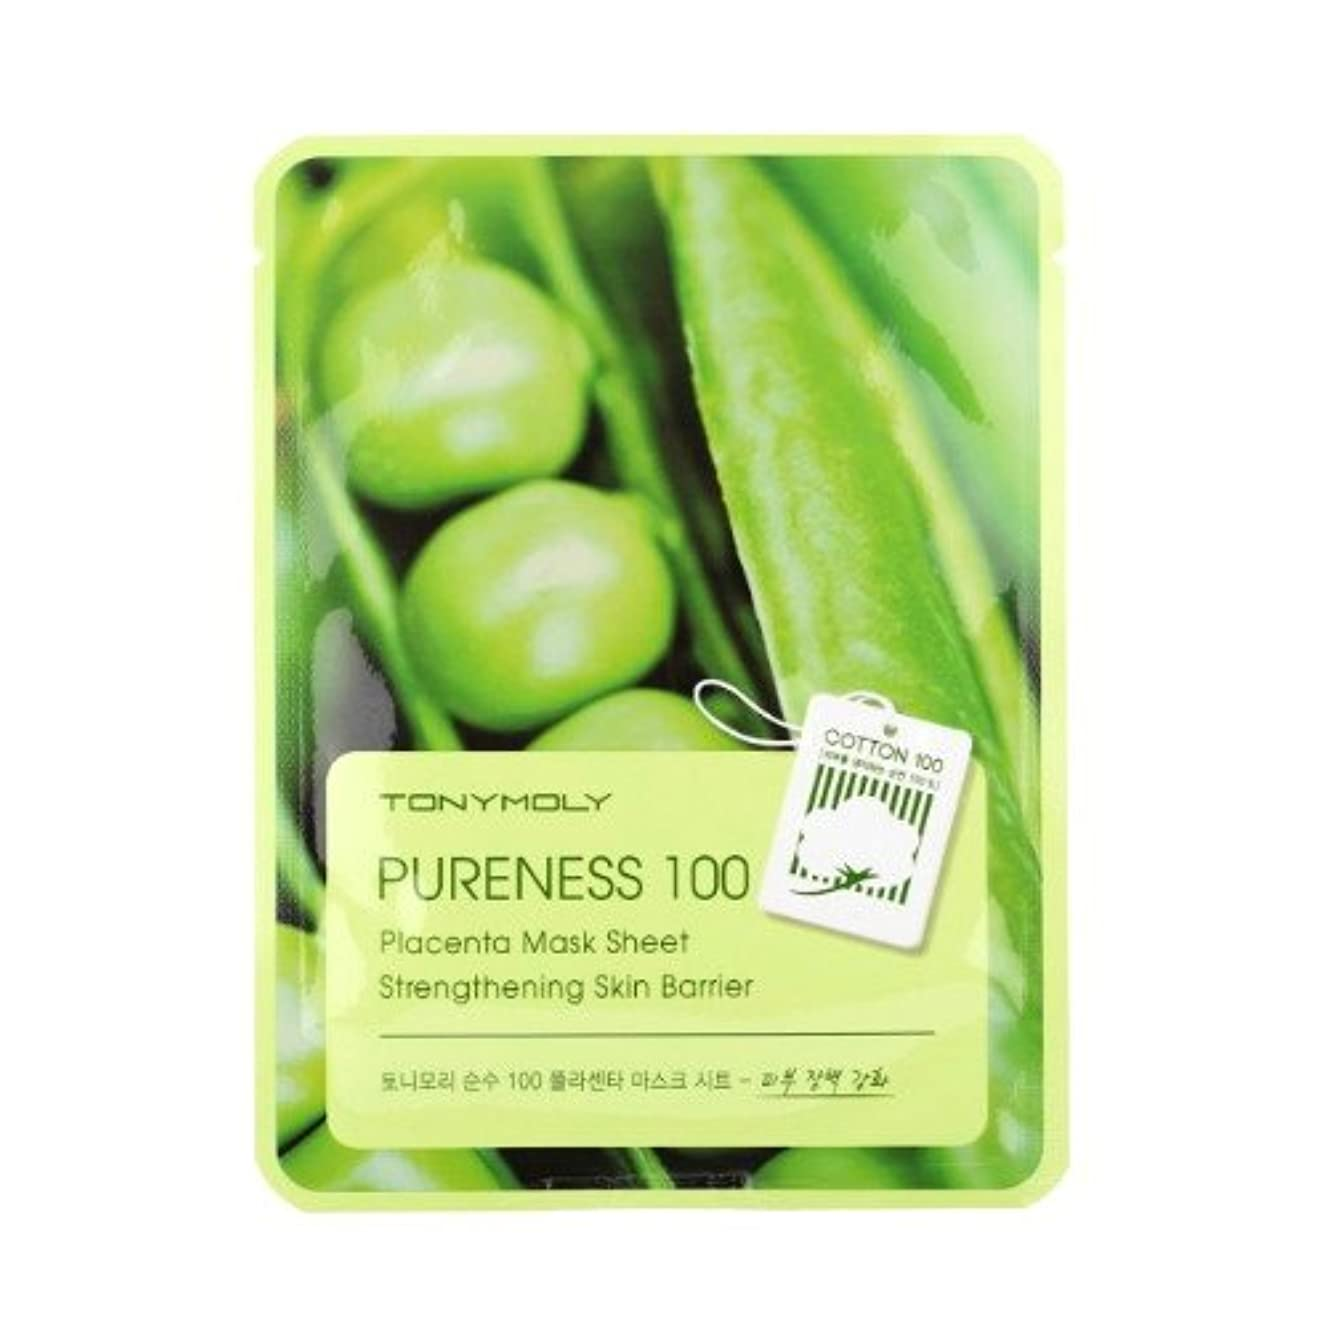 紫の借りる拳(6 Pack) TONYMOLY Pureness 100 Placenta Mask Sheet Strengthening Skin Barrier (並行輸入品)